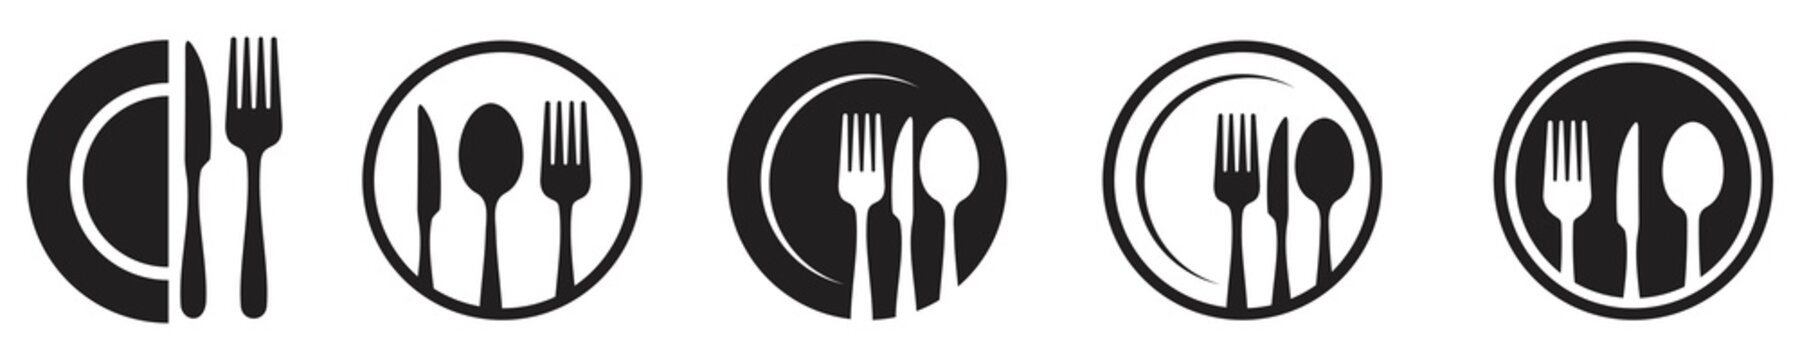 spoon, Fork, knife and plate icon set, menu logo, Silhouette of cutlery. Tableware Vector illustration